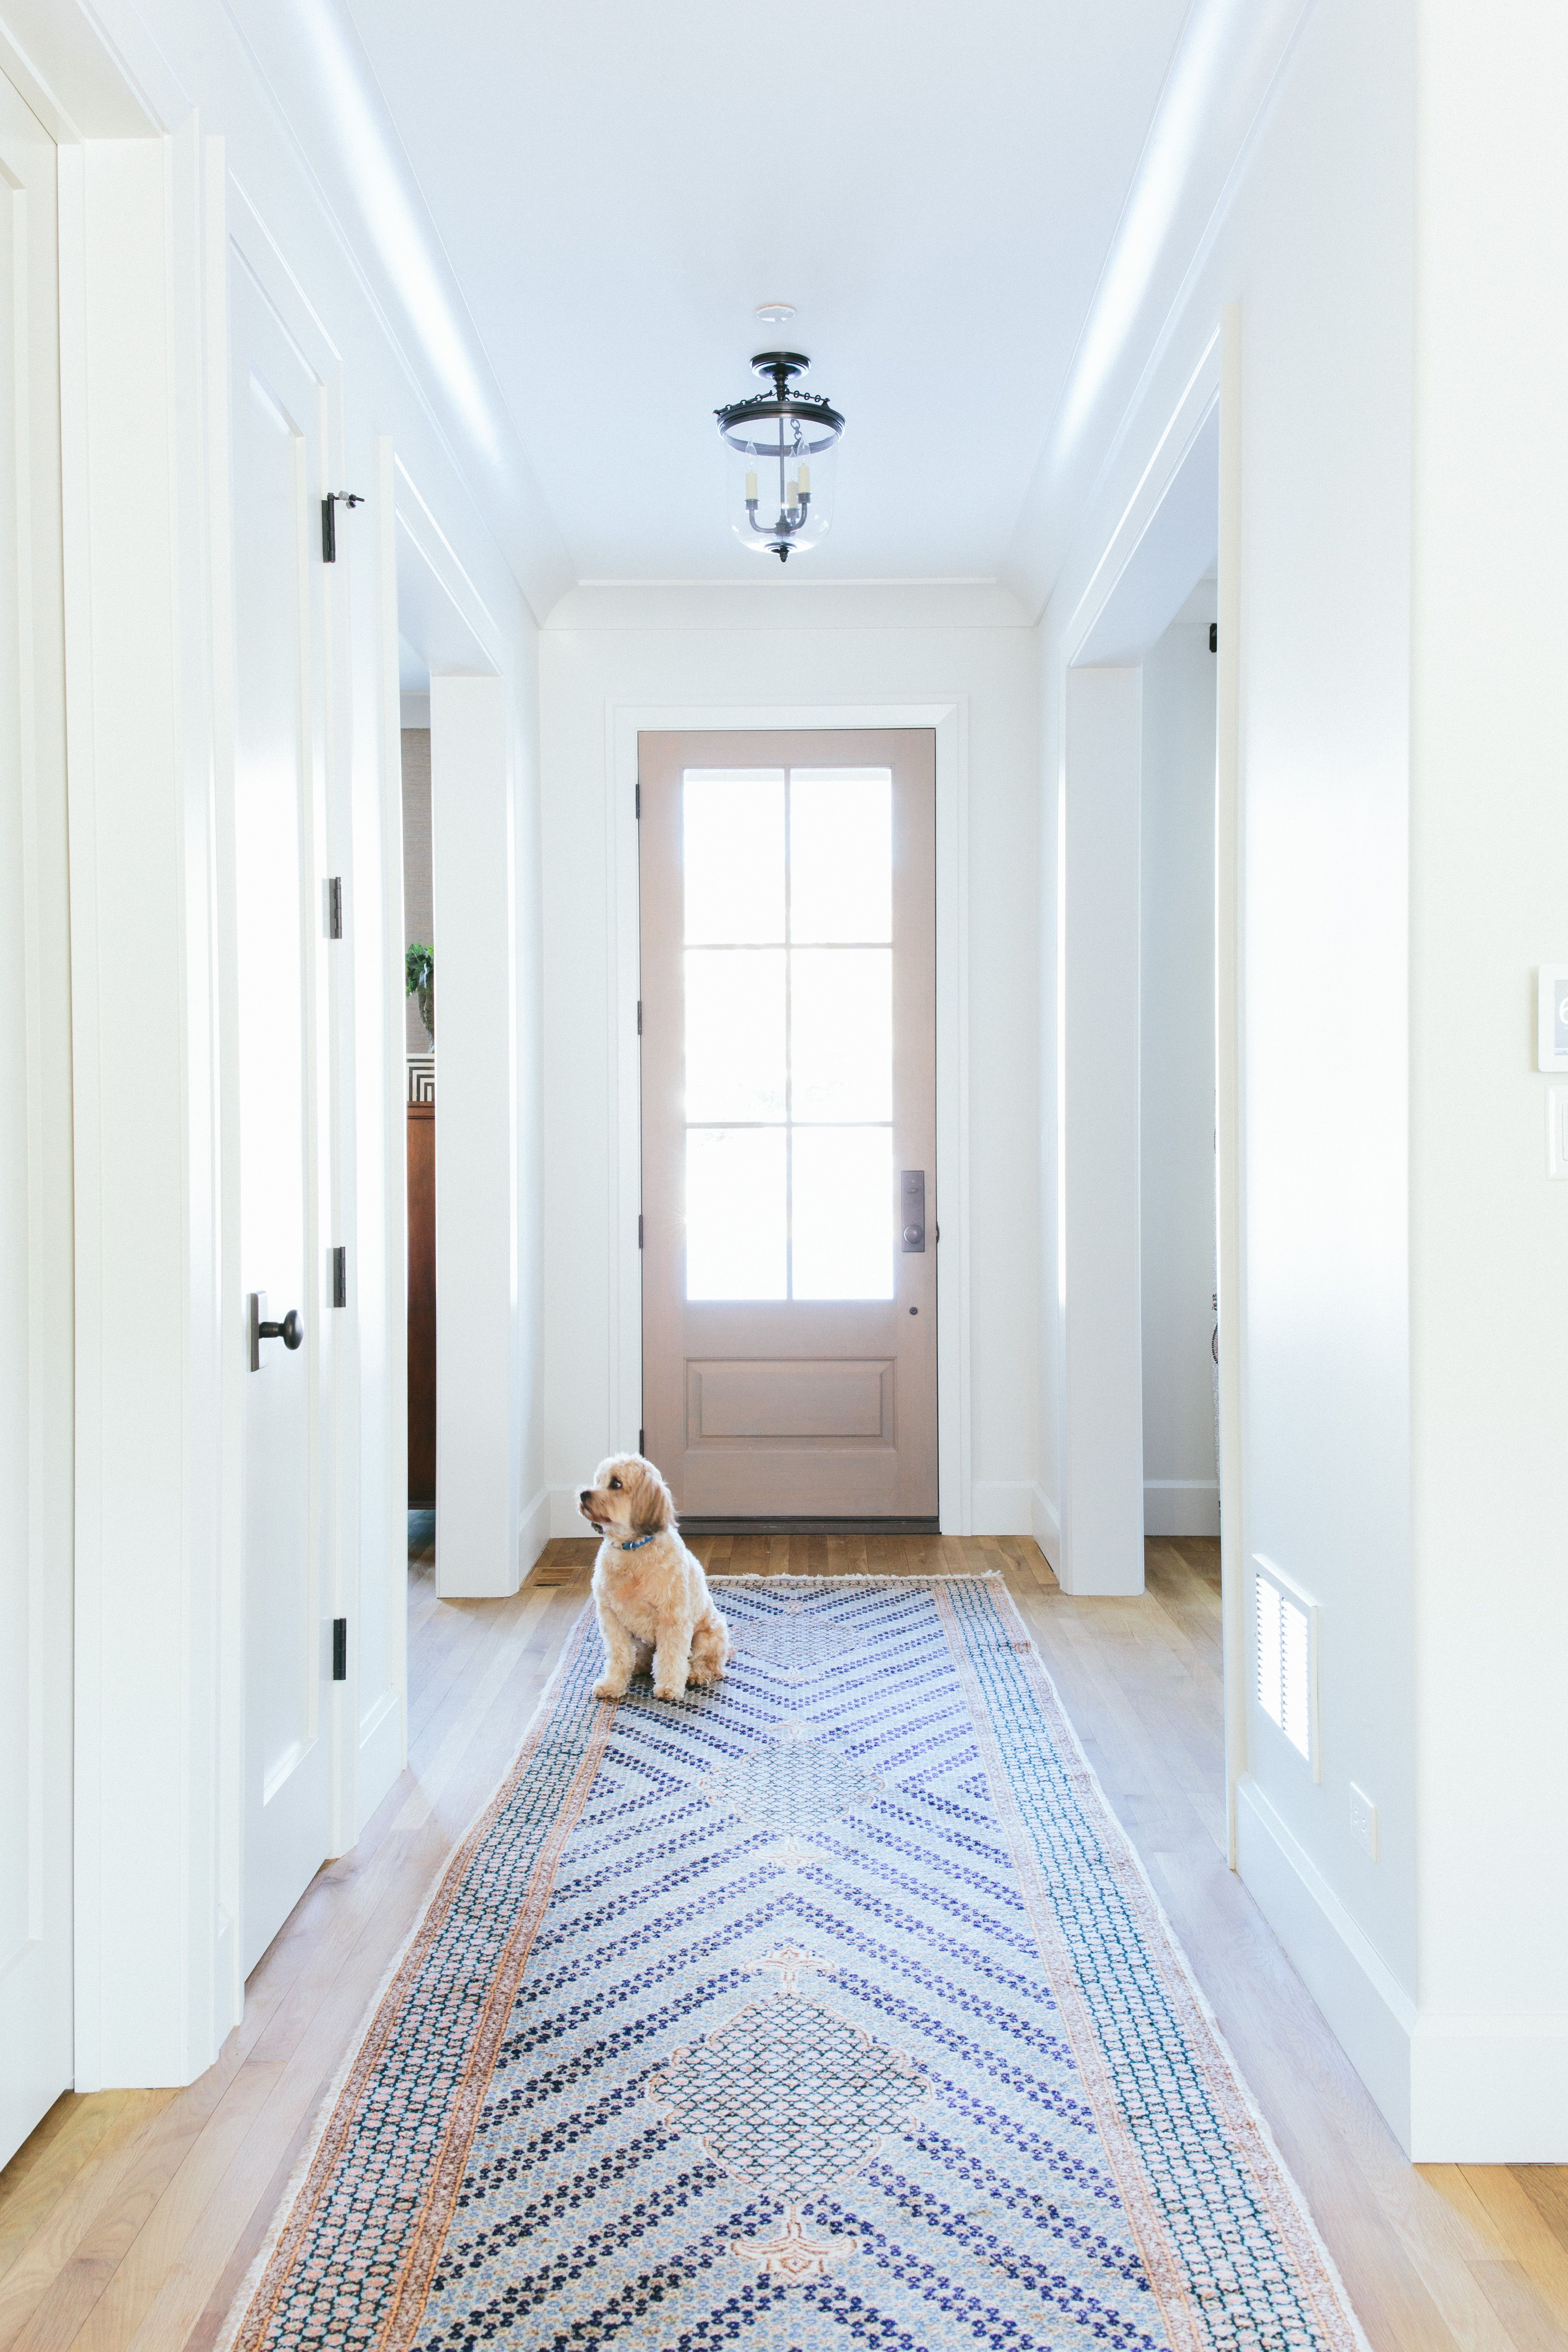 Pin By Lemon Stripes On Puppy Love Entry Hallway Home Decor